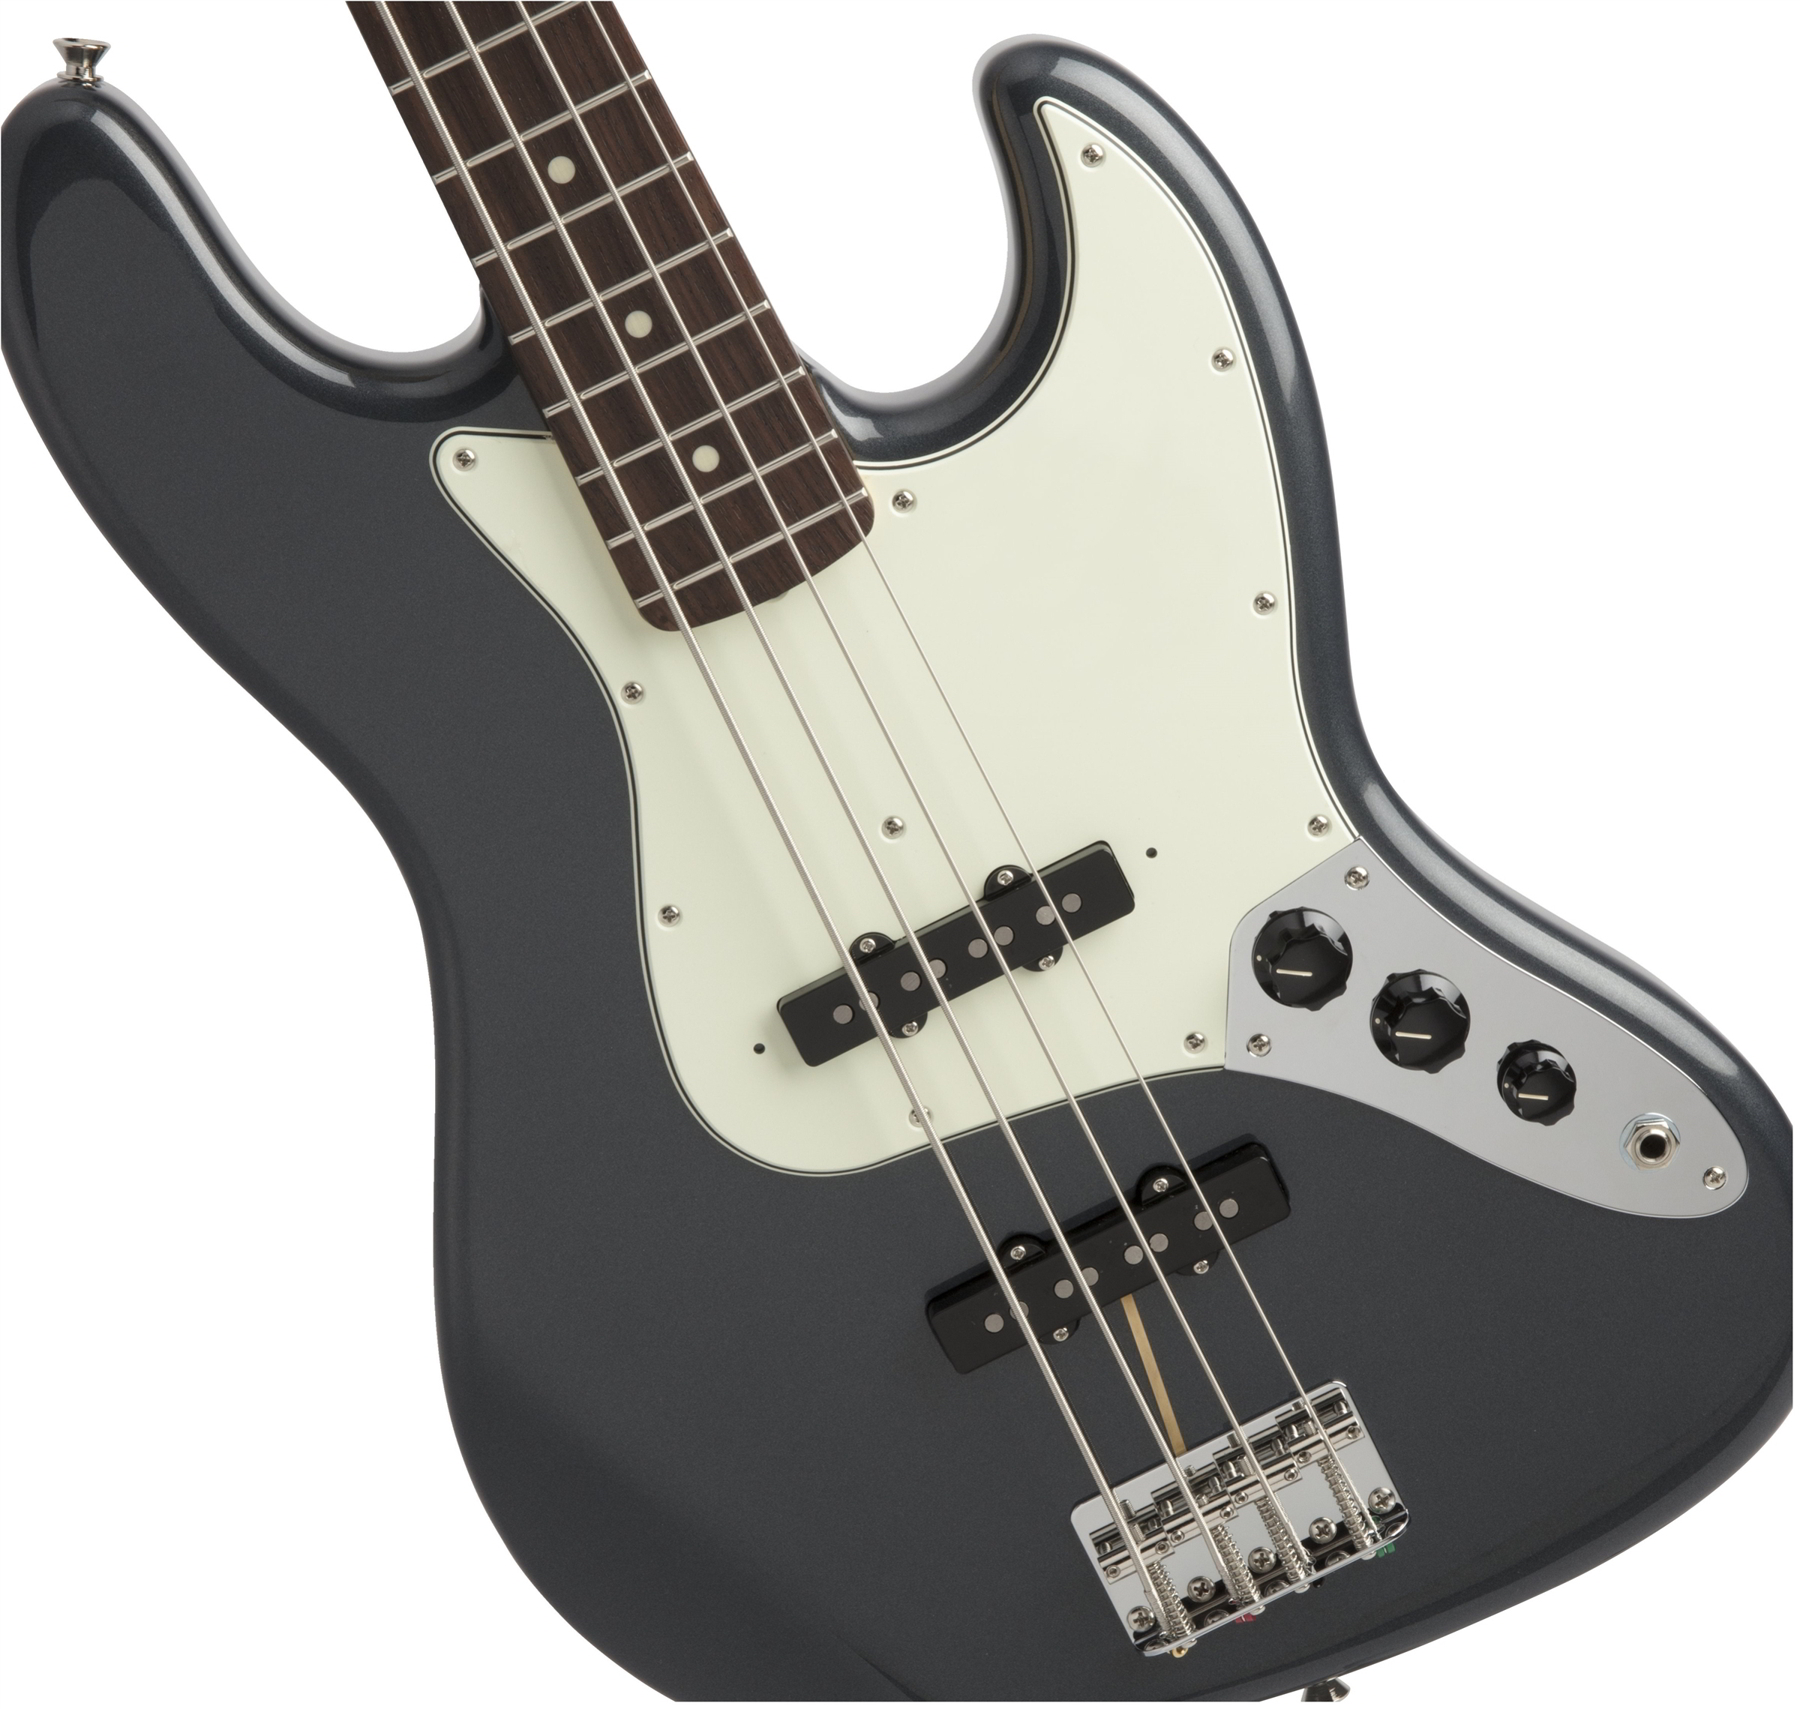 Made in Japan Hybrid 60s Jazz Bass Charcoal Frost Metallic追加画像